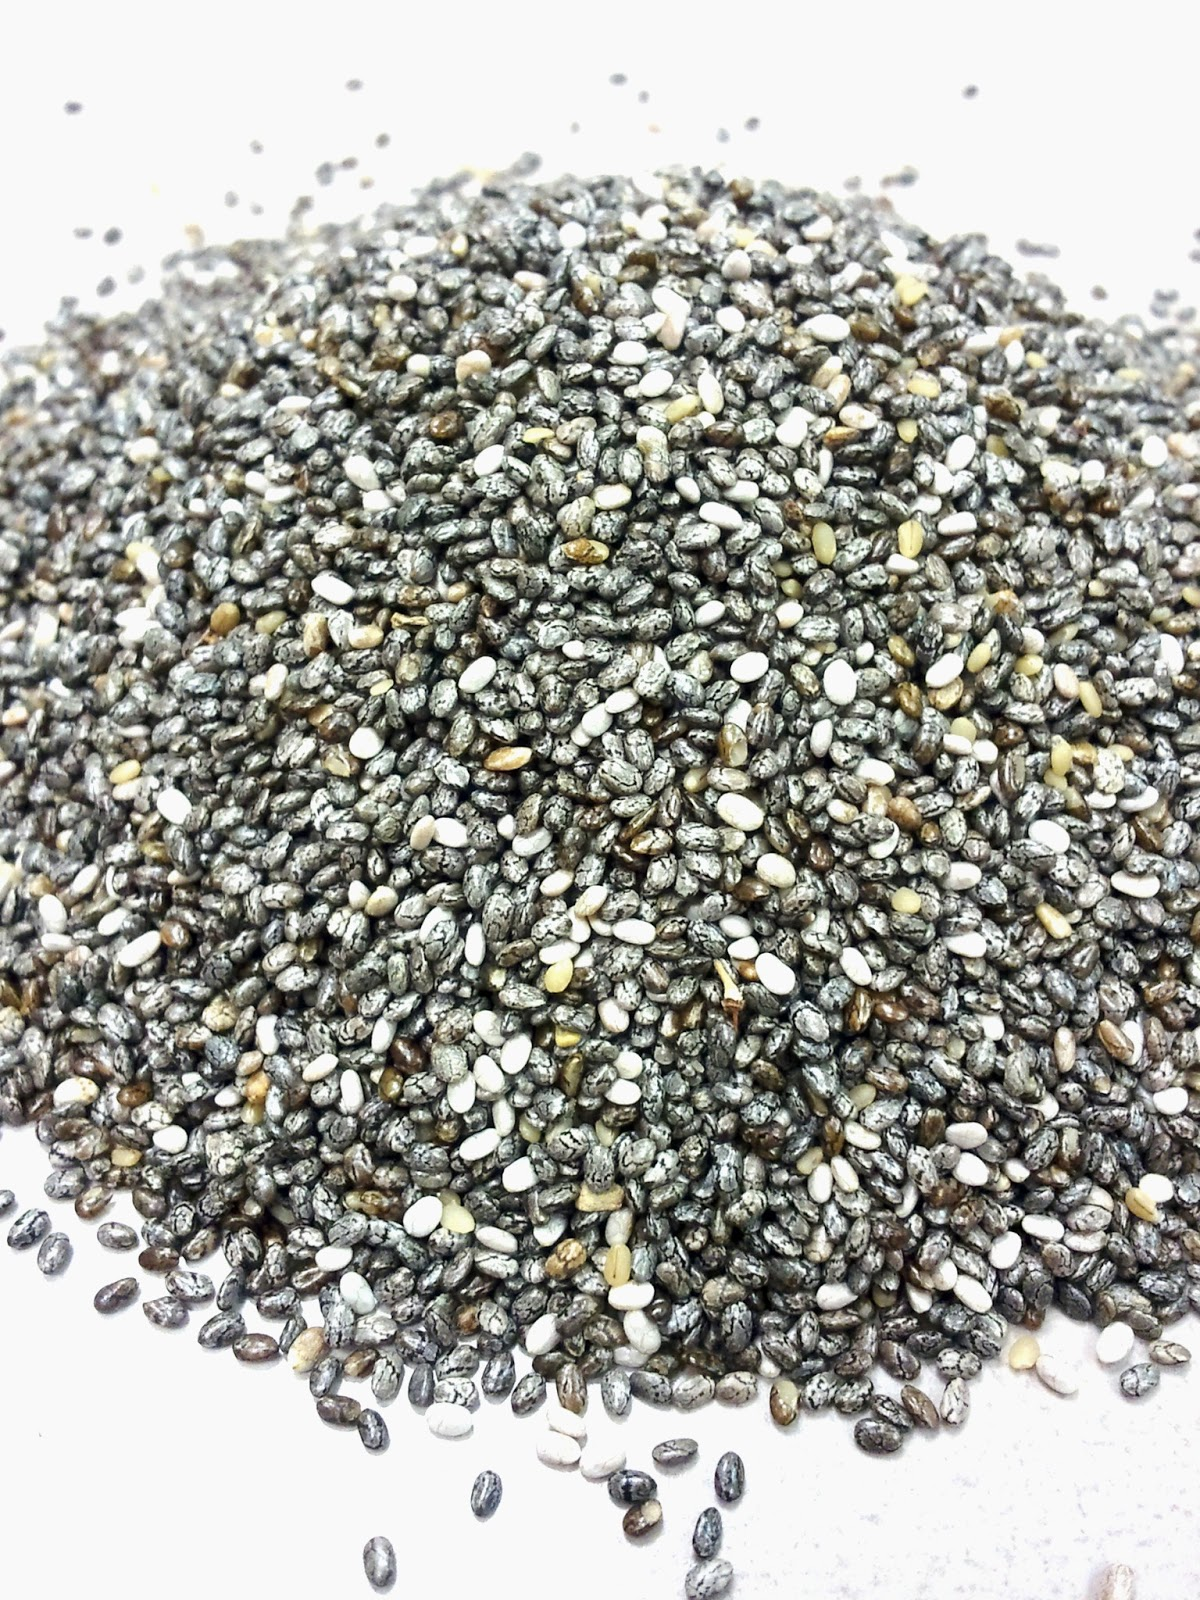 Chef Cathy The Nutritionist: Health Benefits of Chia Seeds